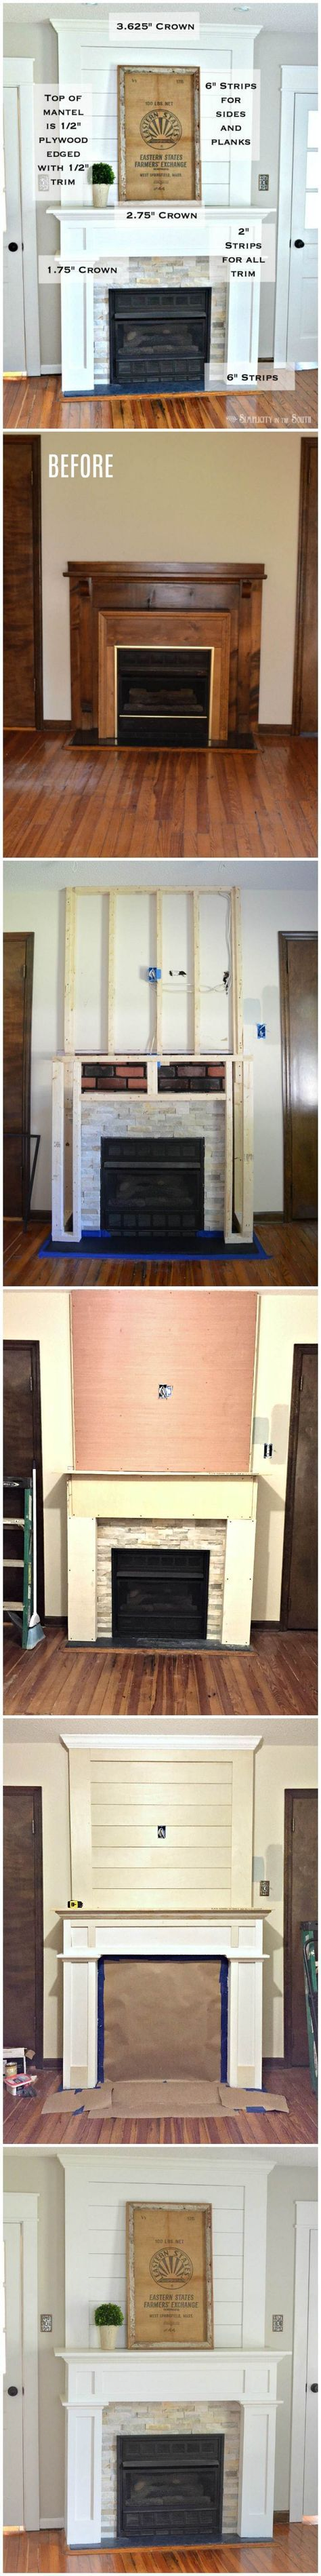 Walking with dancers the family room s fireplace update - Diy Budget Fireplace Surround Makeover From The Boring Brown Before To A Light Bright White After